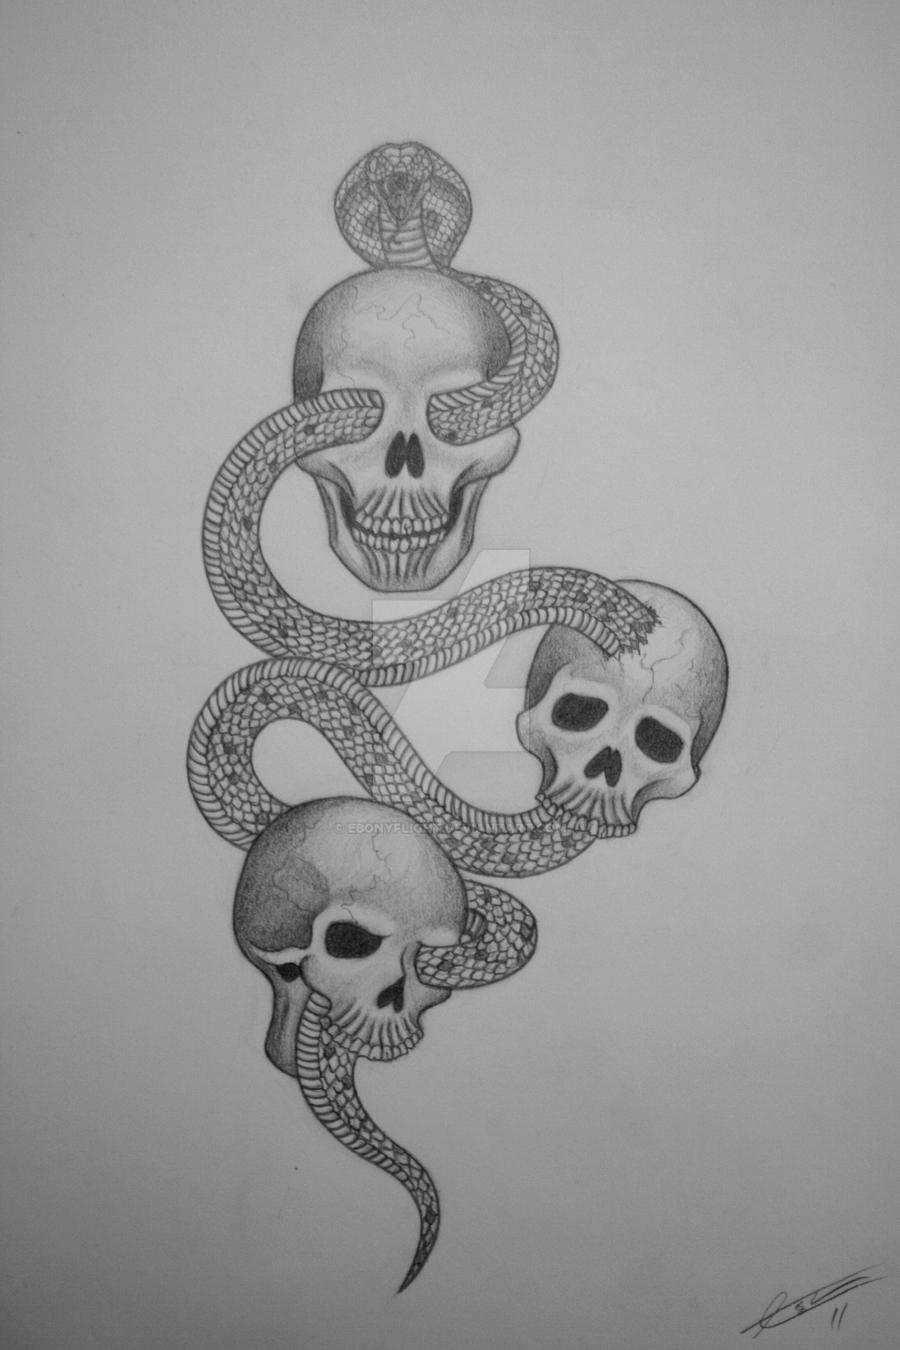 Skull n Snake Tattoo design by EbonyFlight on DeviantArt